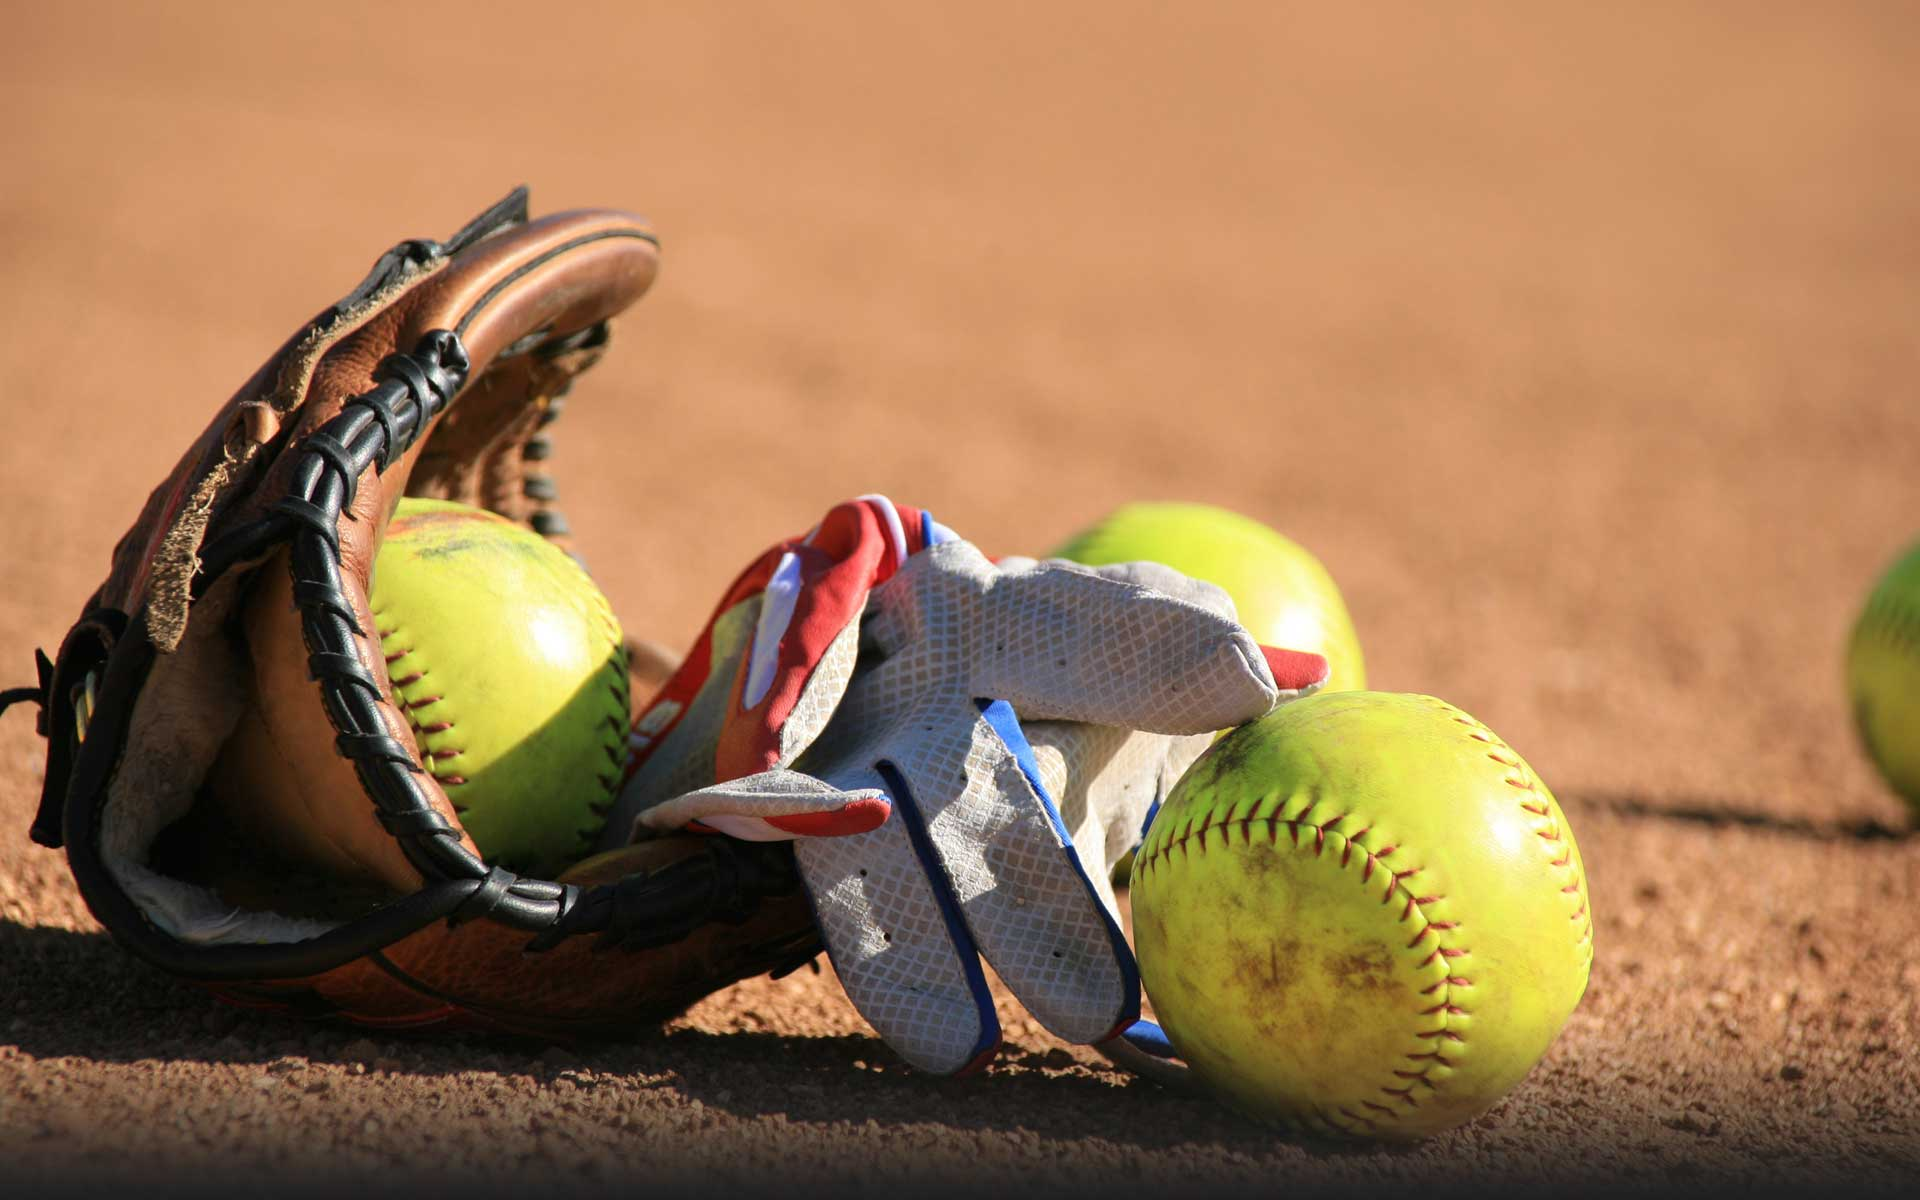 Softball Drills and Practice Plans - Infield, Outfield, and Team Drills